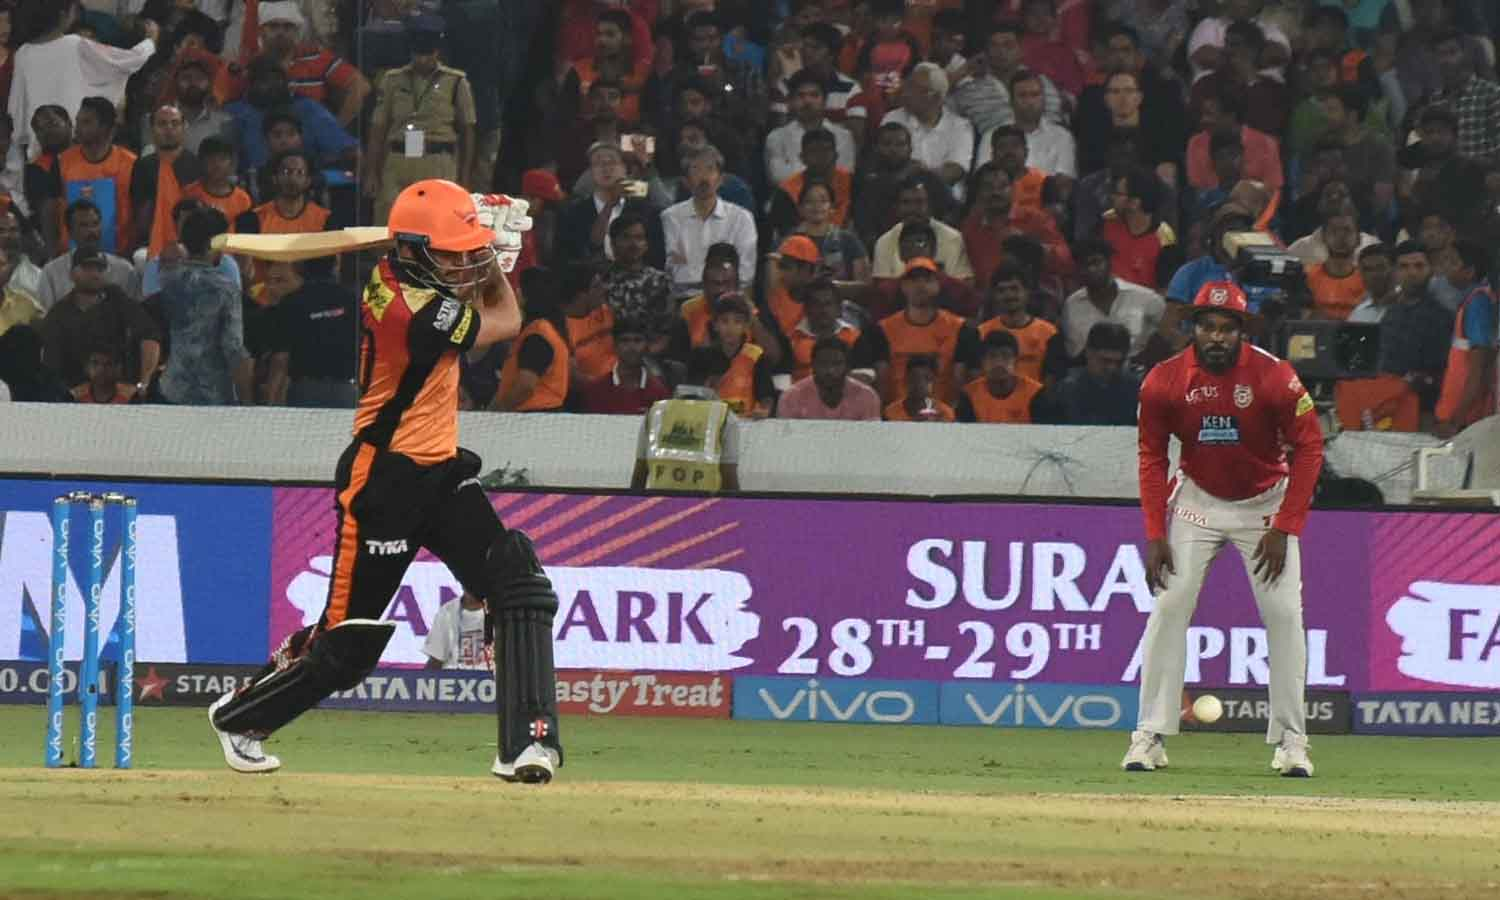 Manish Pandey Of Sunrisers Hyderabad In Action During An IPL 2018 Match Images